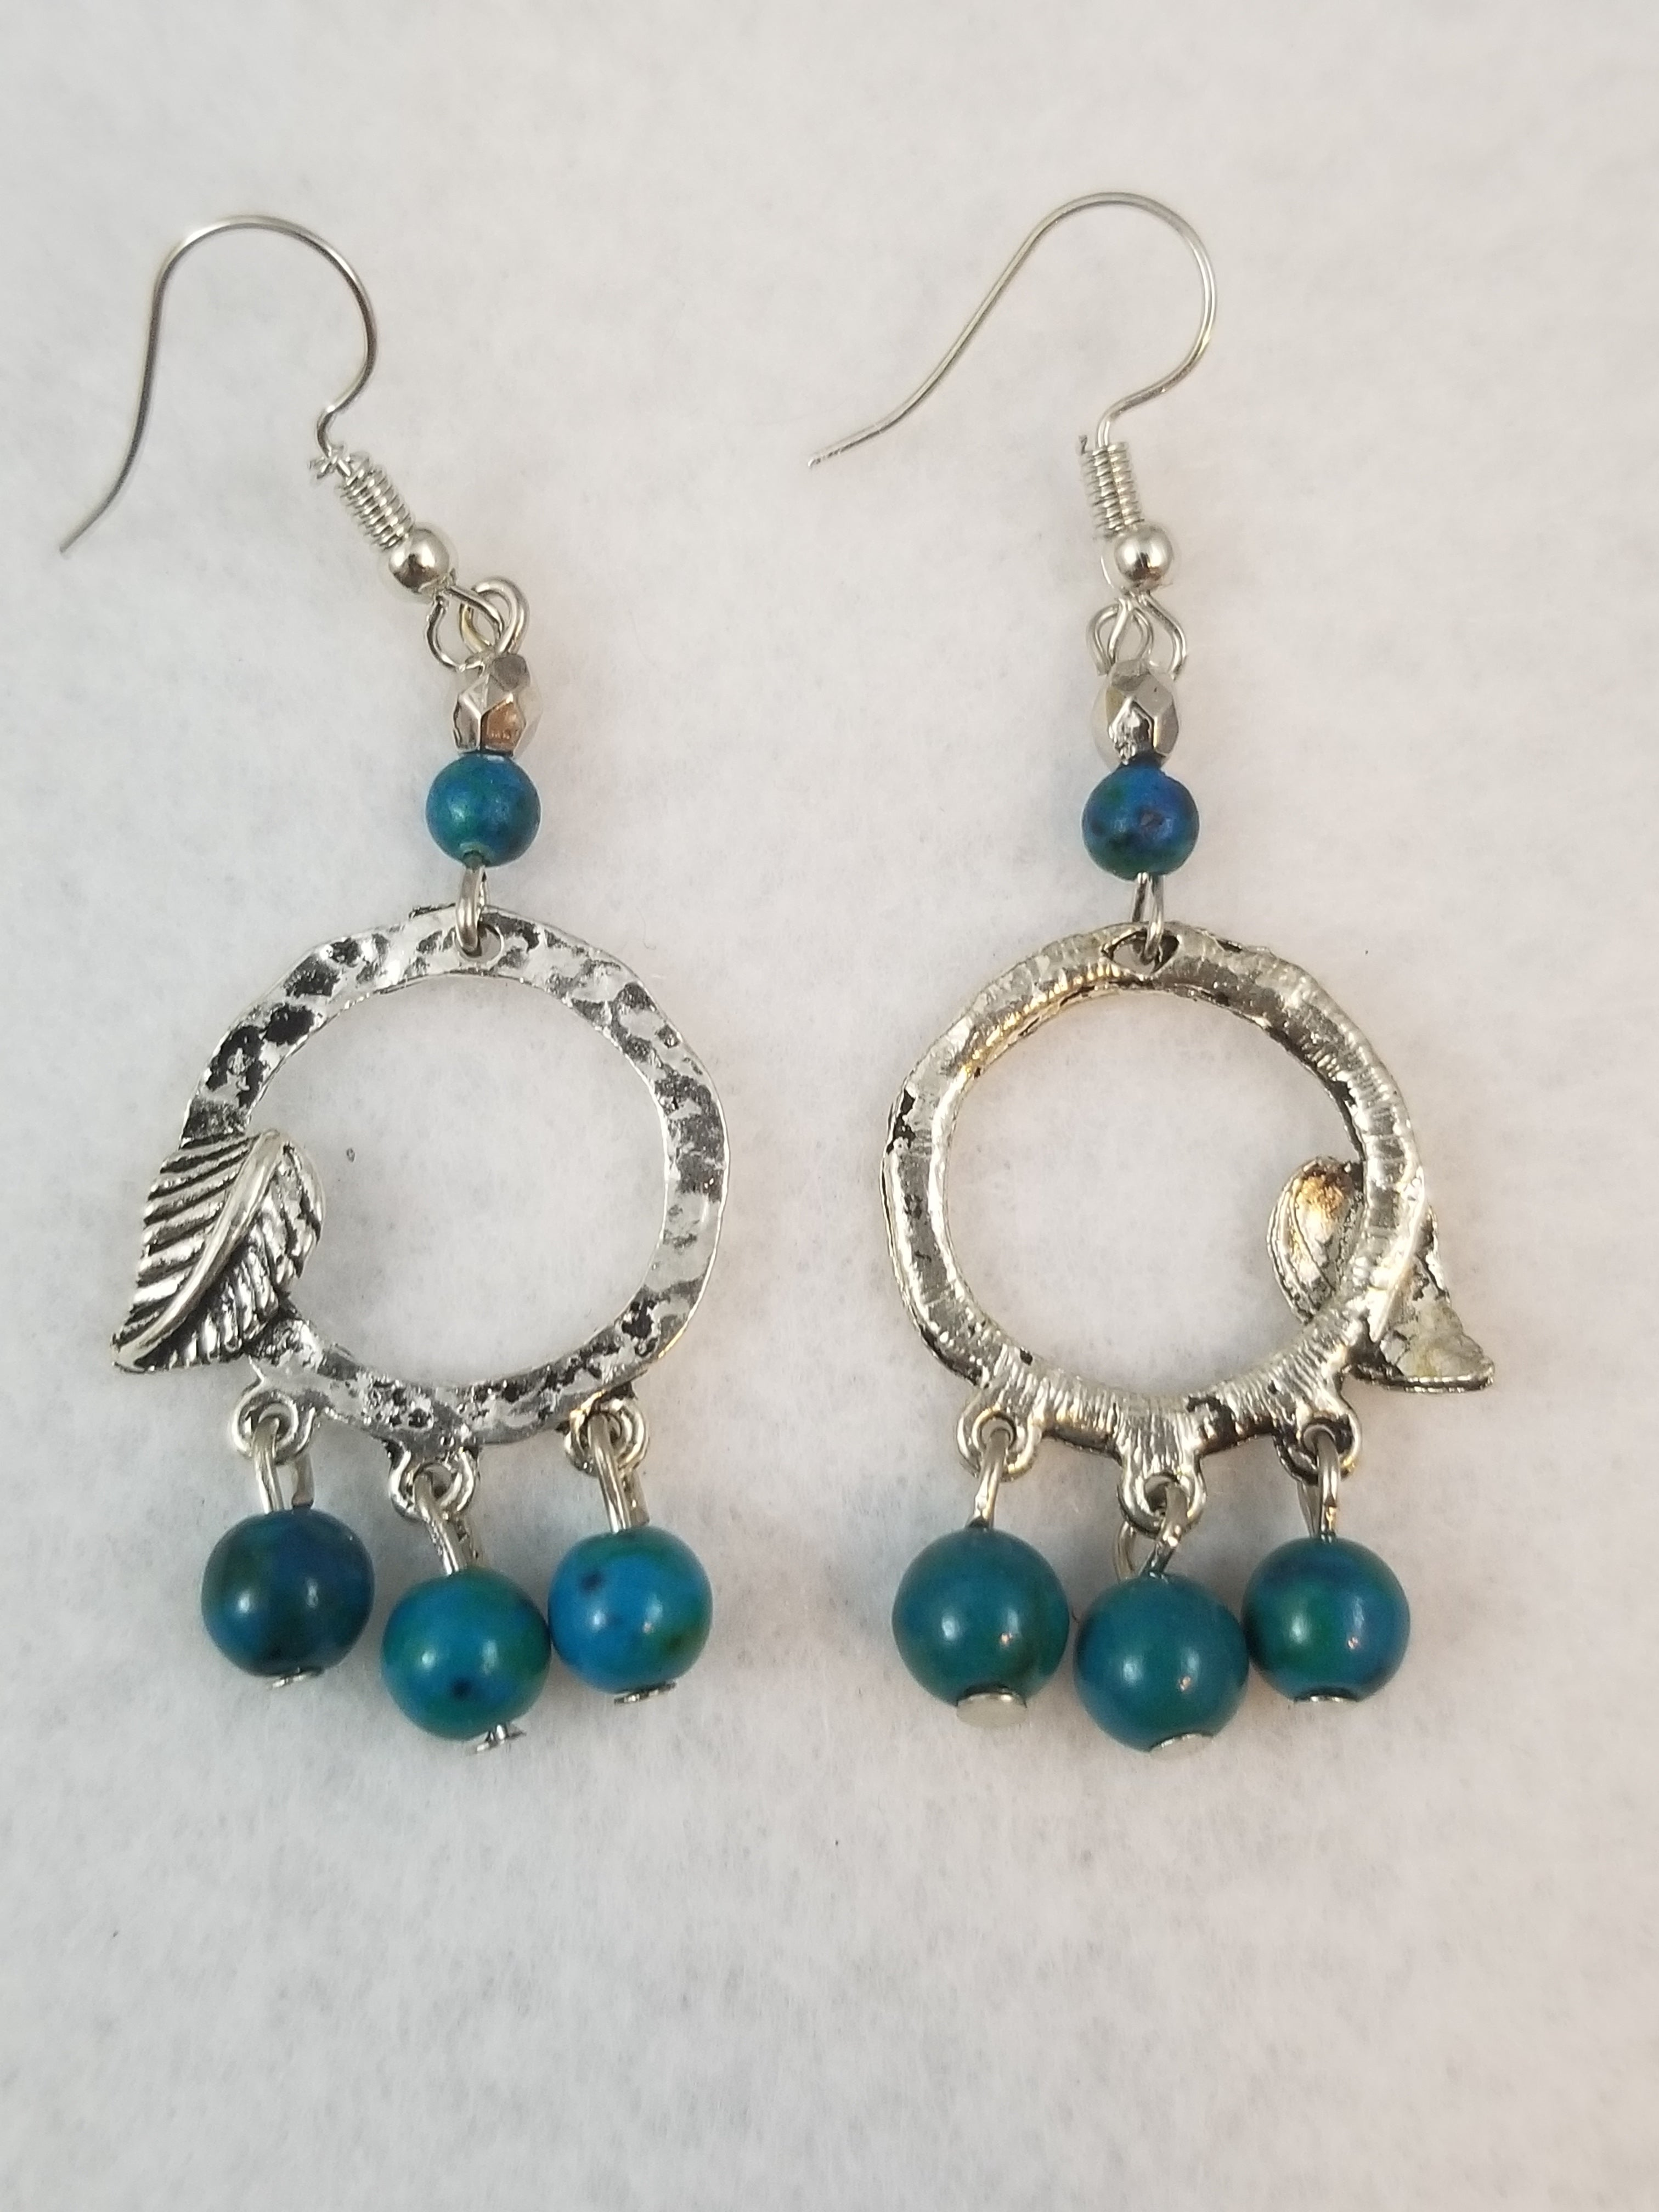 Turquois Colored #40 Earrings